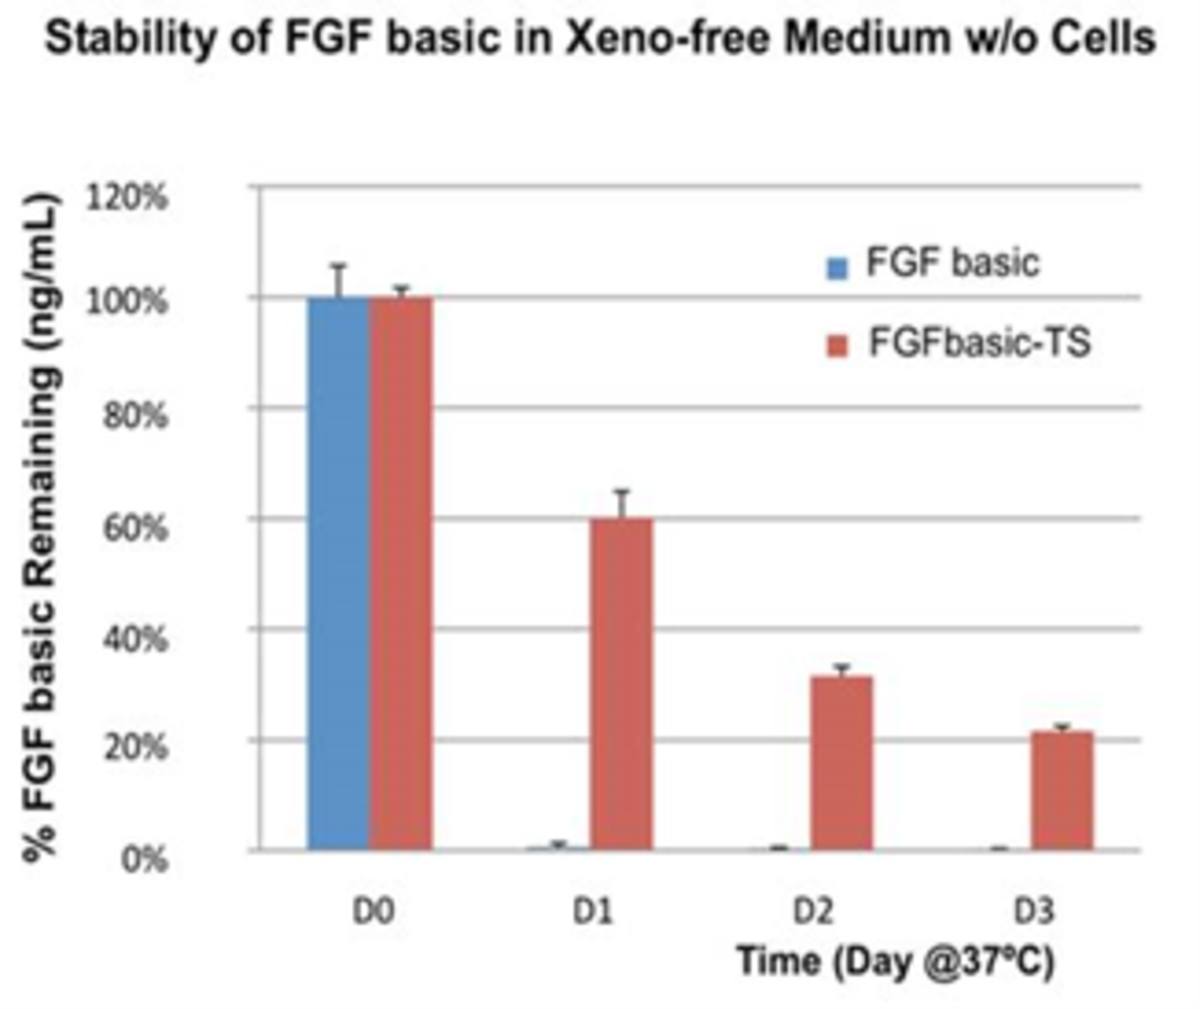 Stability data for basic FGF from Proteintech